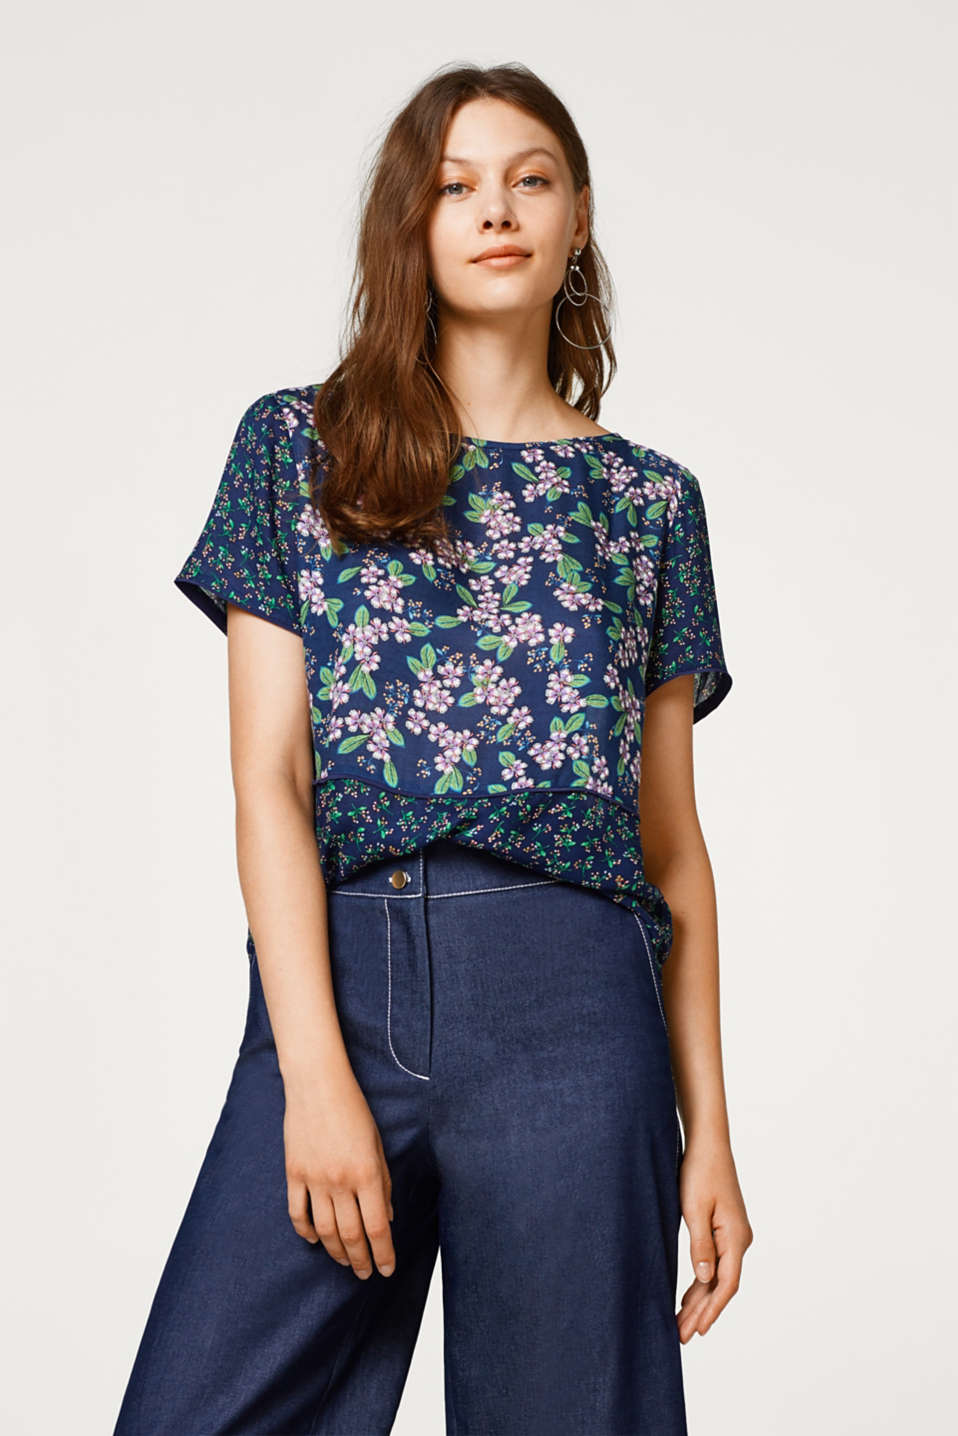 Esprit - Boxy blouse with cherry blossom print